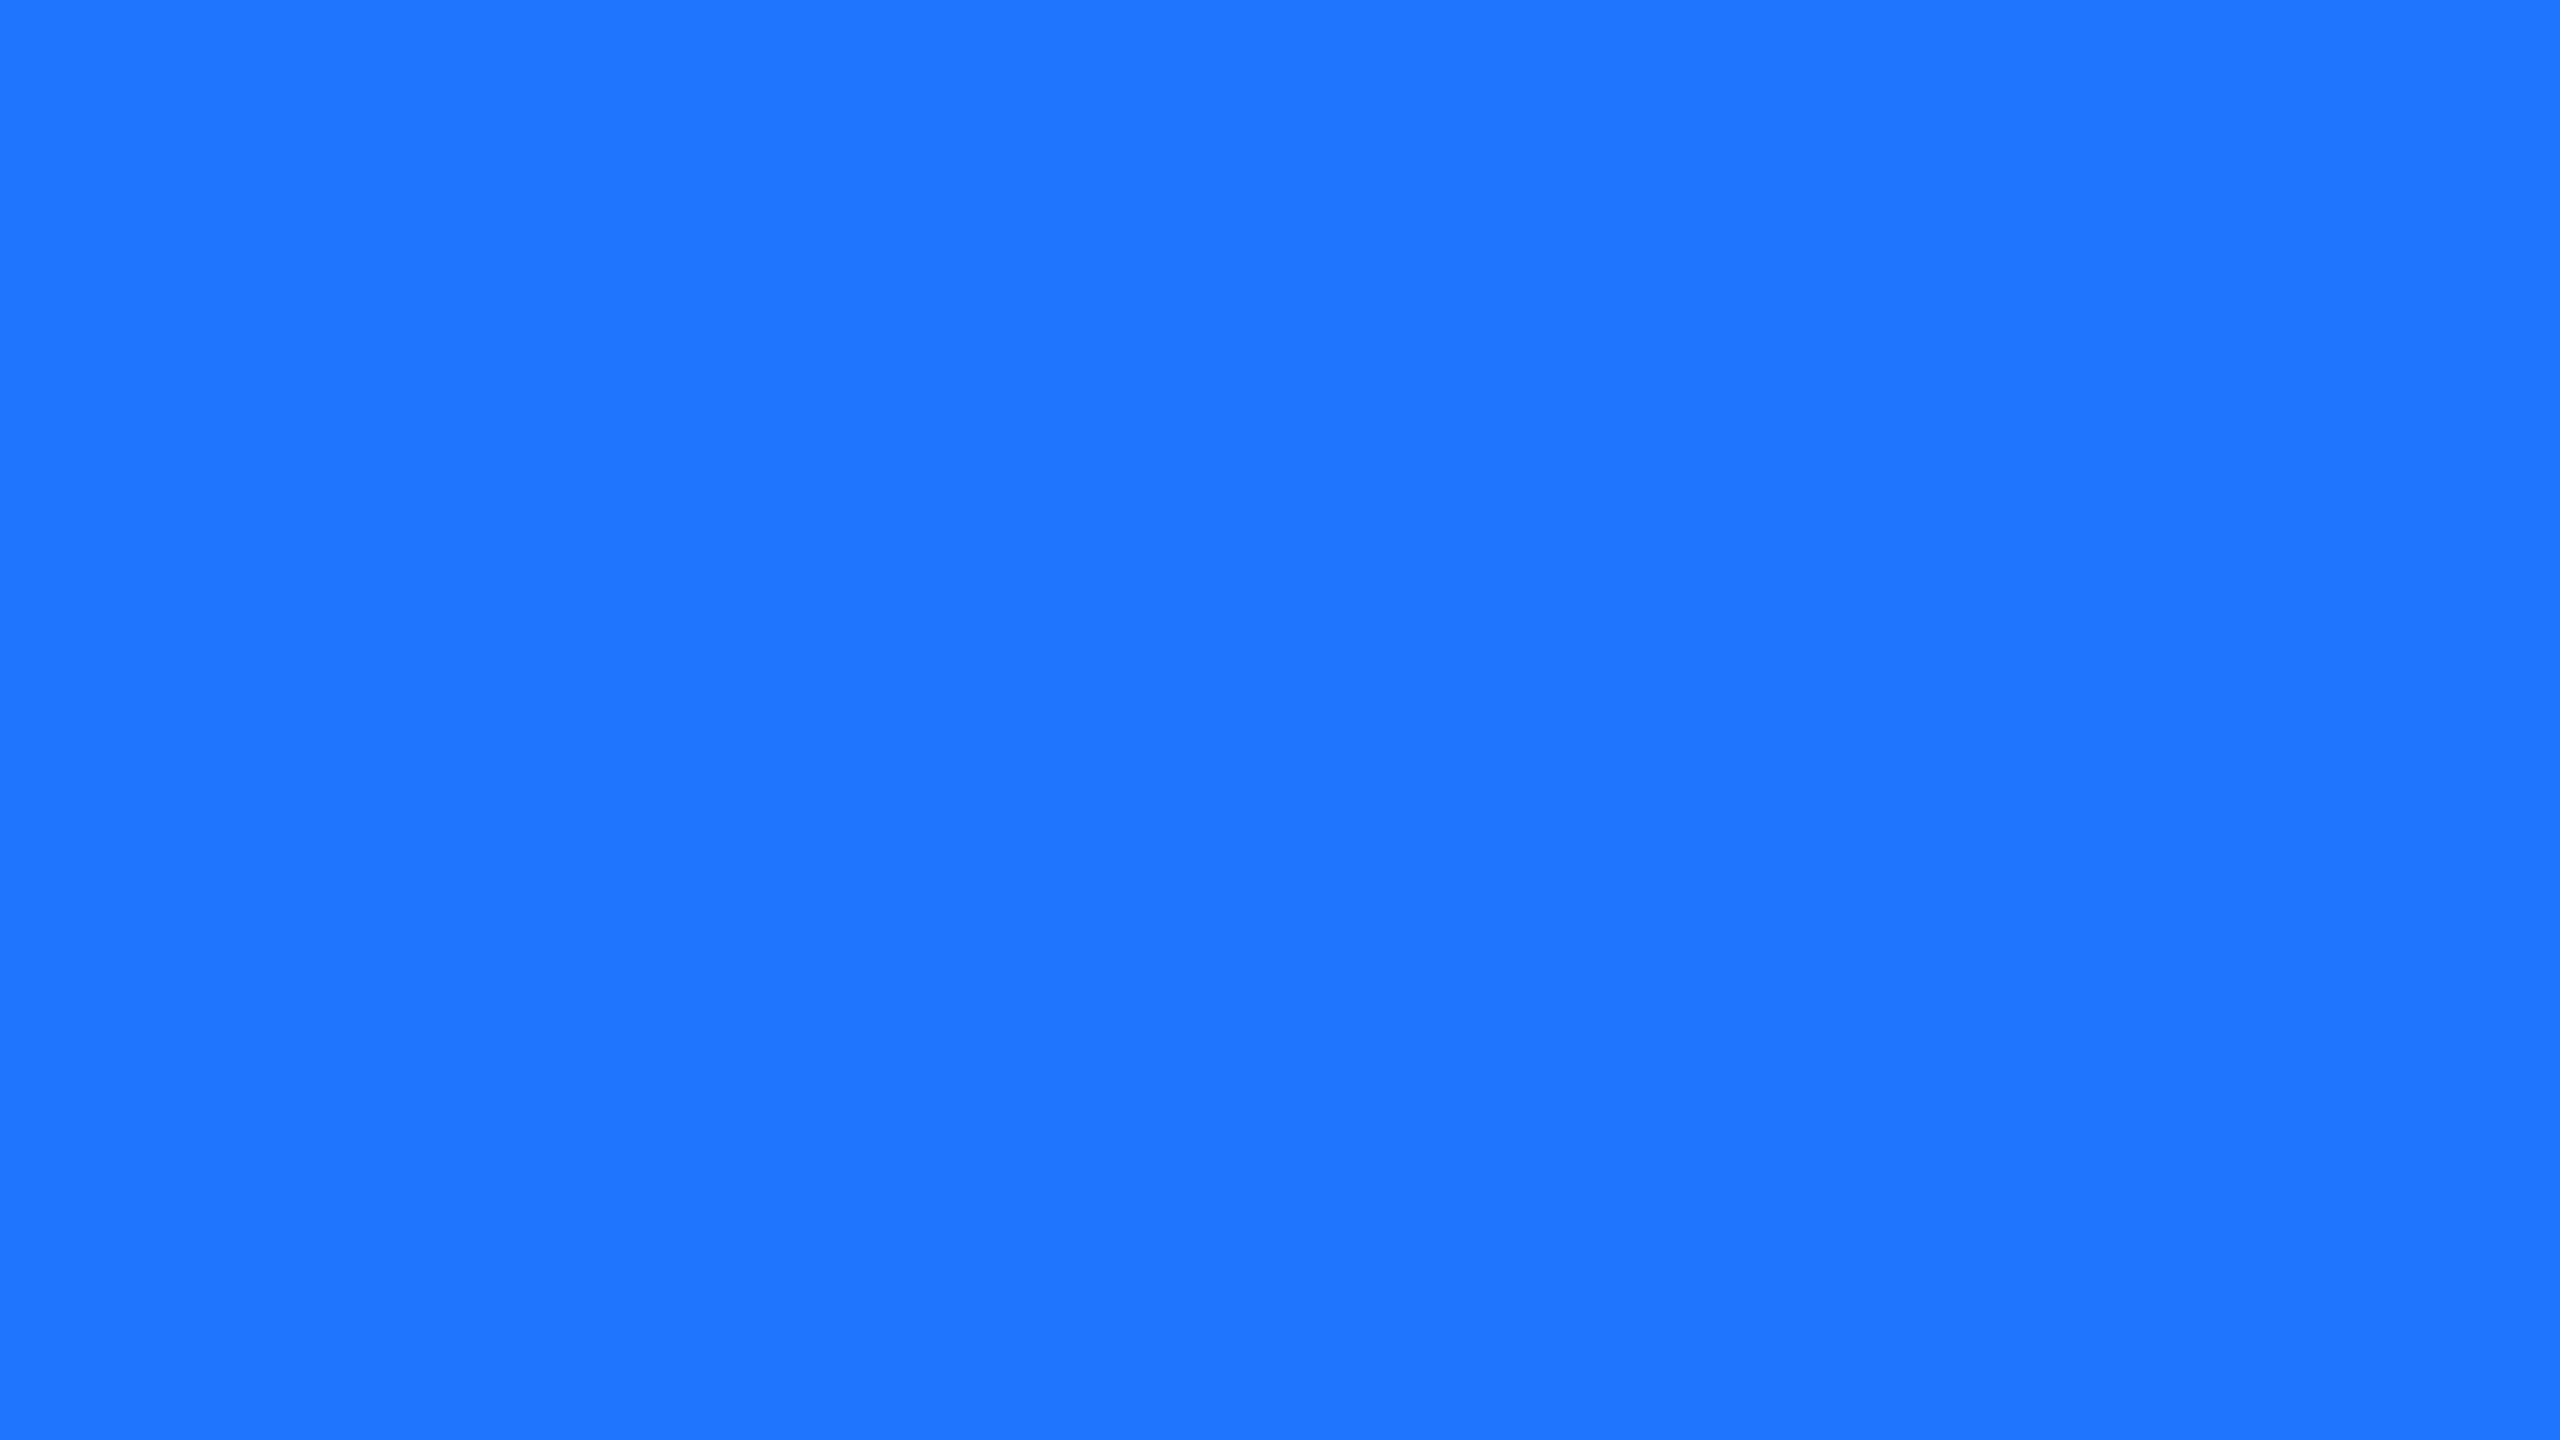 2560x1440 Blue Crayola Solid Color Background